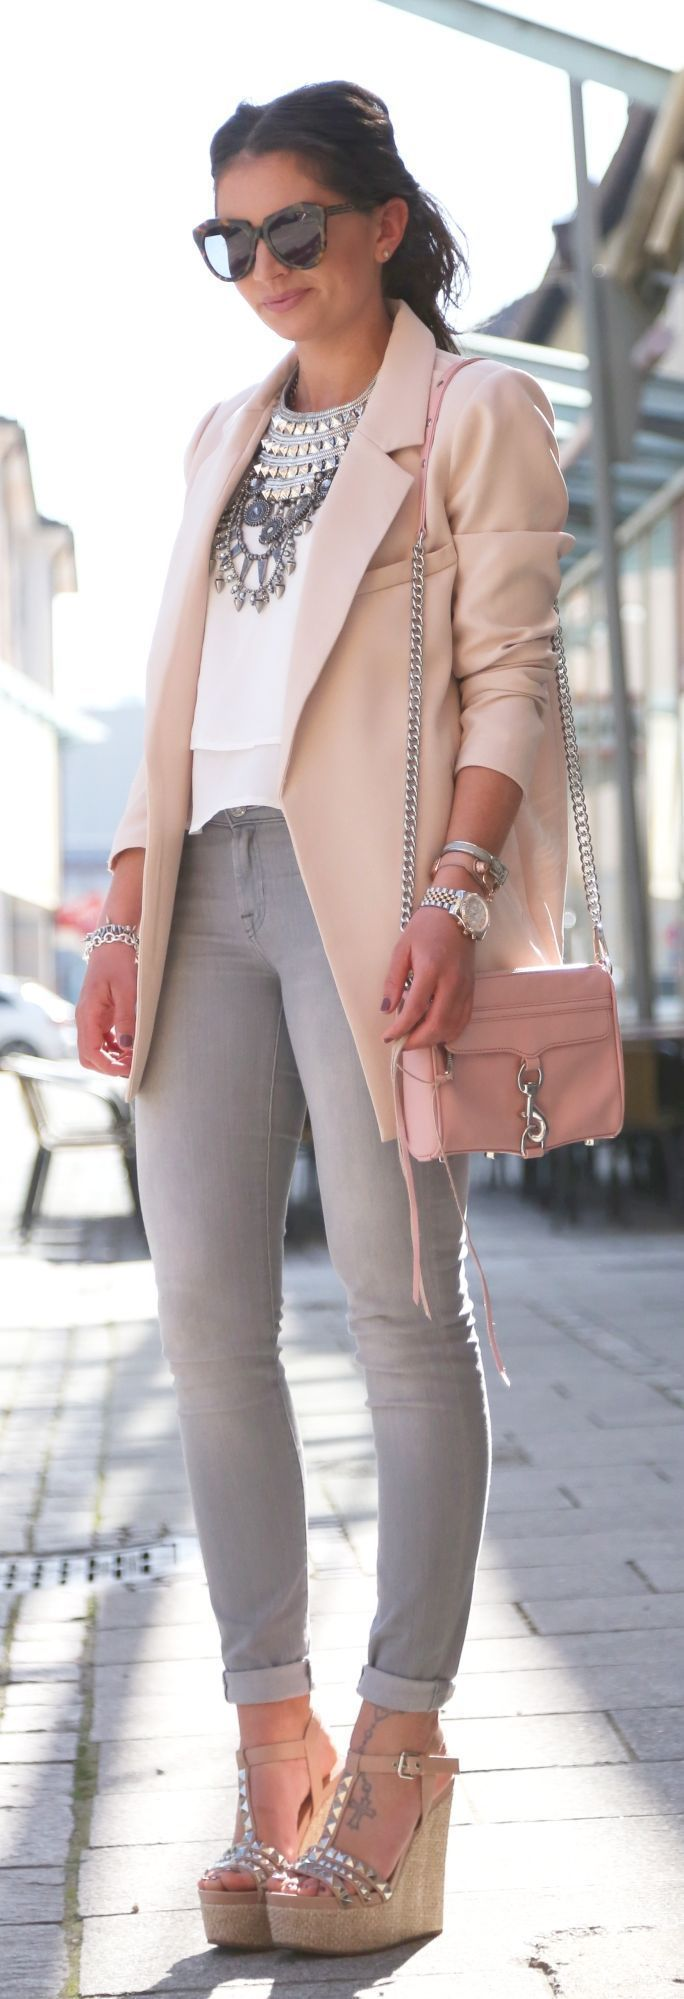 Fabulous Business Lady Outfit - Soft Pastel Chic Spring Look. Love Jacket, Grey Jeans, Sandlas and Bag combination.